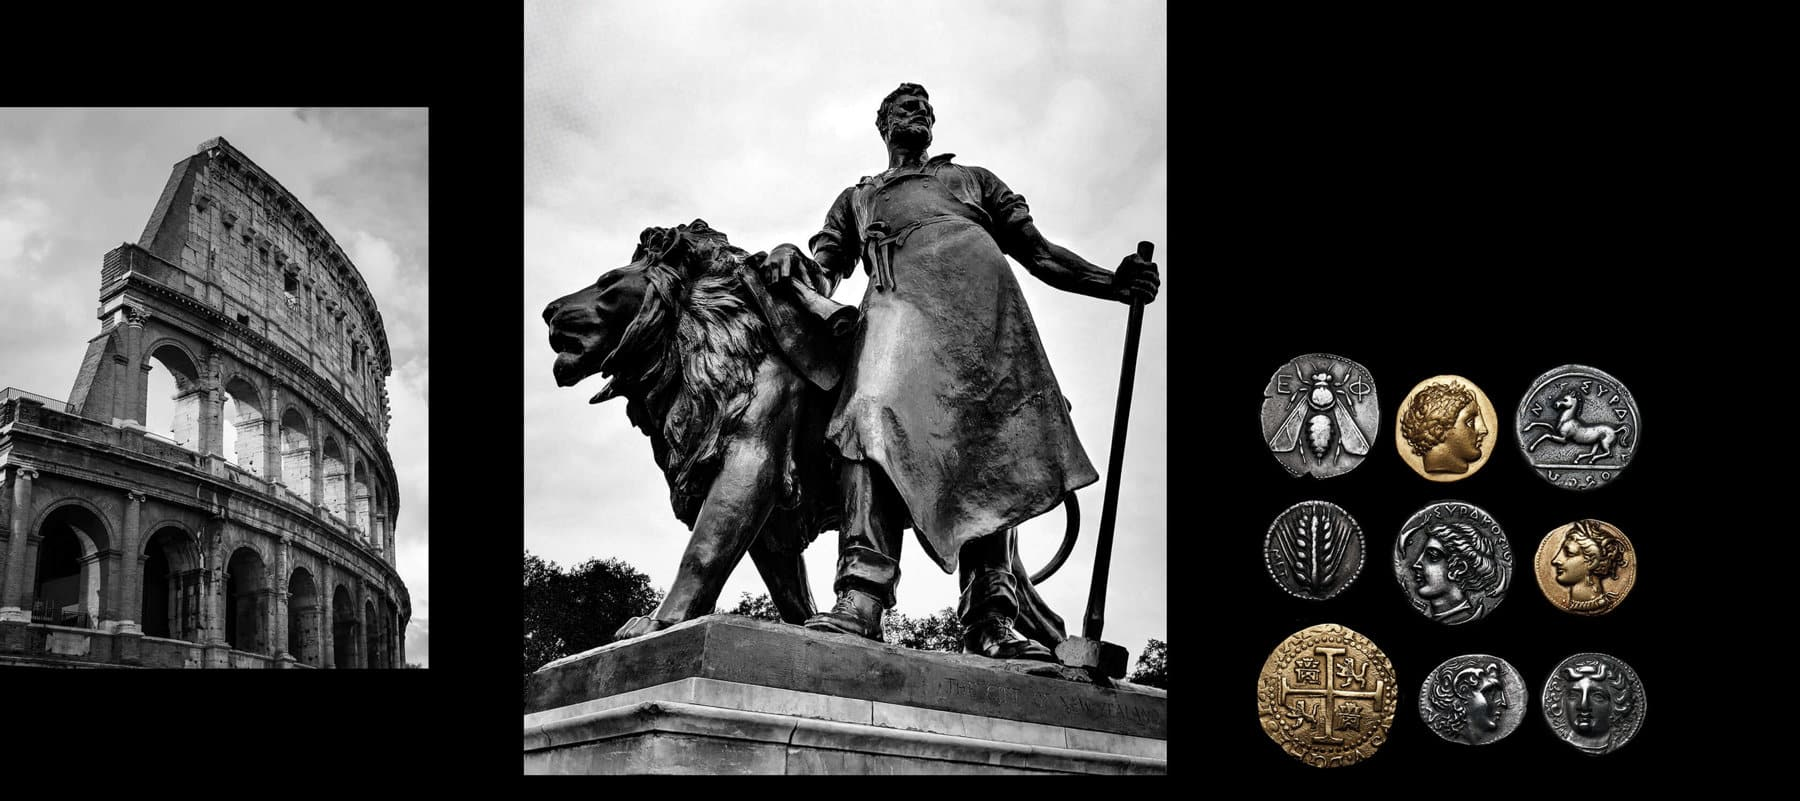 A photo collage features two black-and-white photos in a row next to color photograph showing nine antique silver- and gold-hued coins depicting a bee, horse, grain of wheat and profiles of men against a black background. The black-and-white photos show the Roman colosseum ruins and a statue of a lion next to a male figure holding an axe.